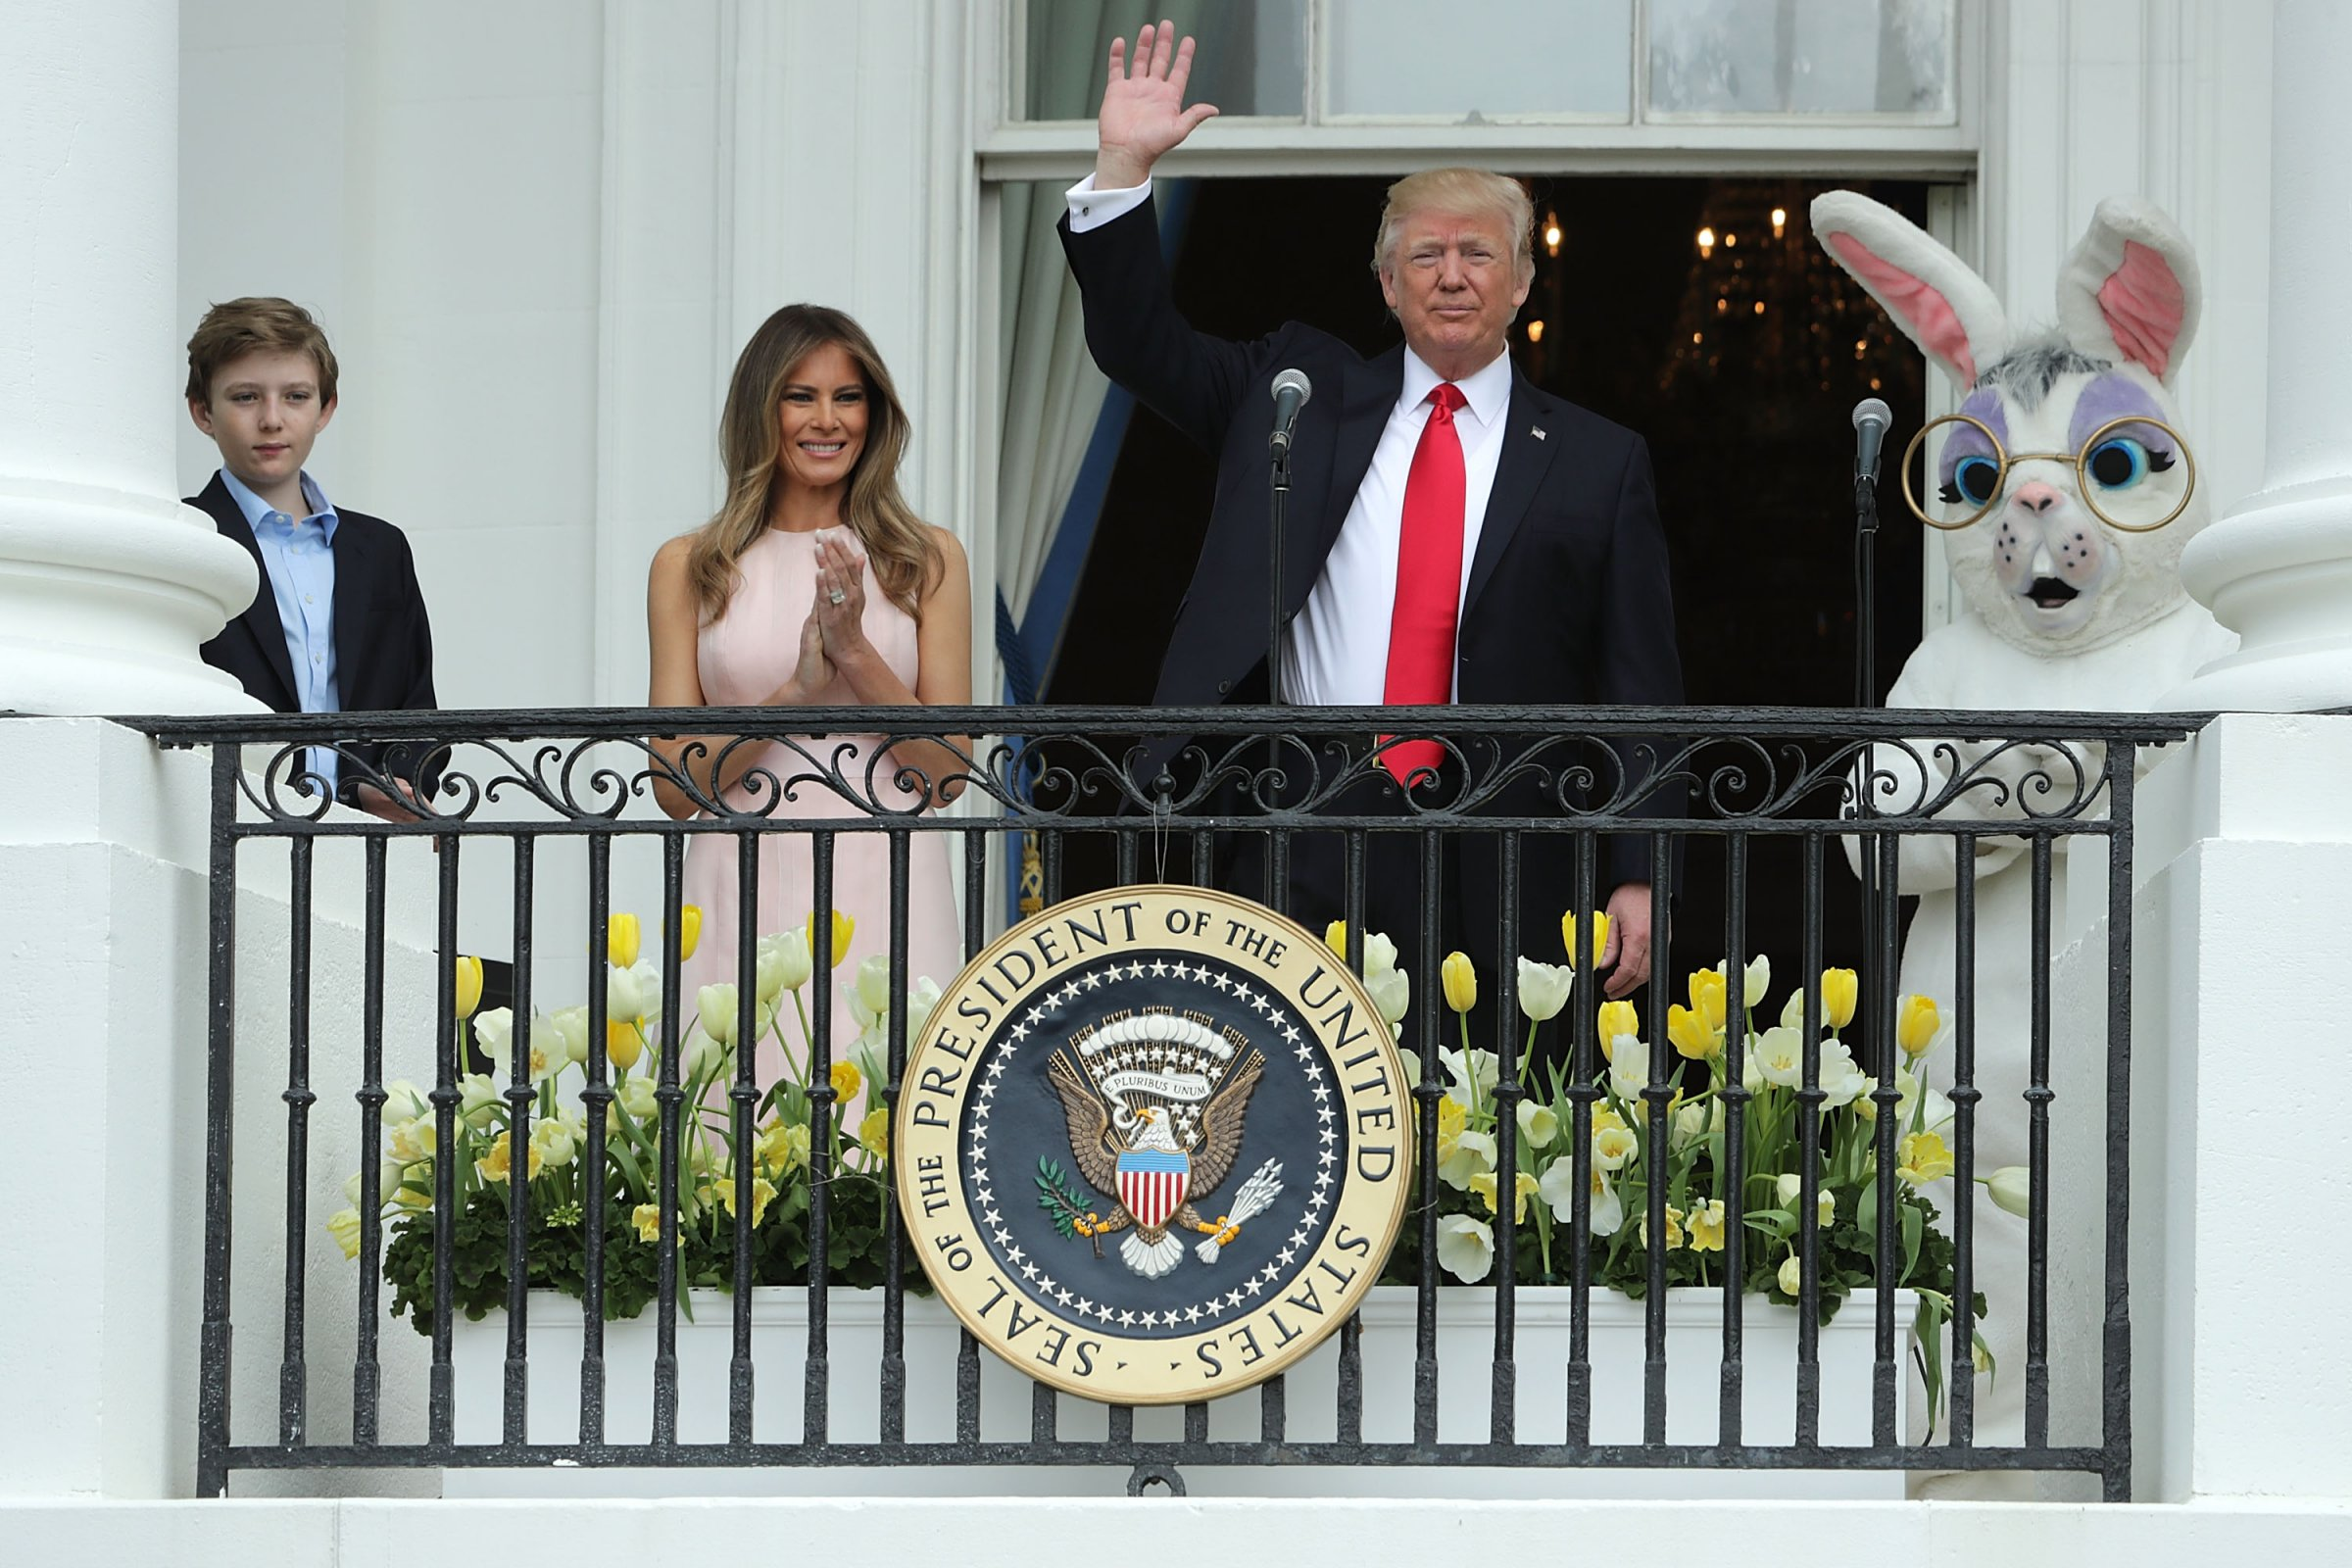 Trump family kicks off Easter egg roll